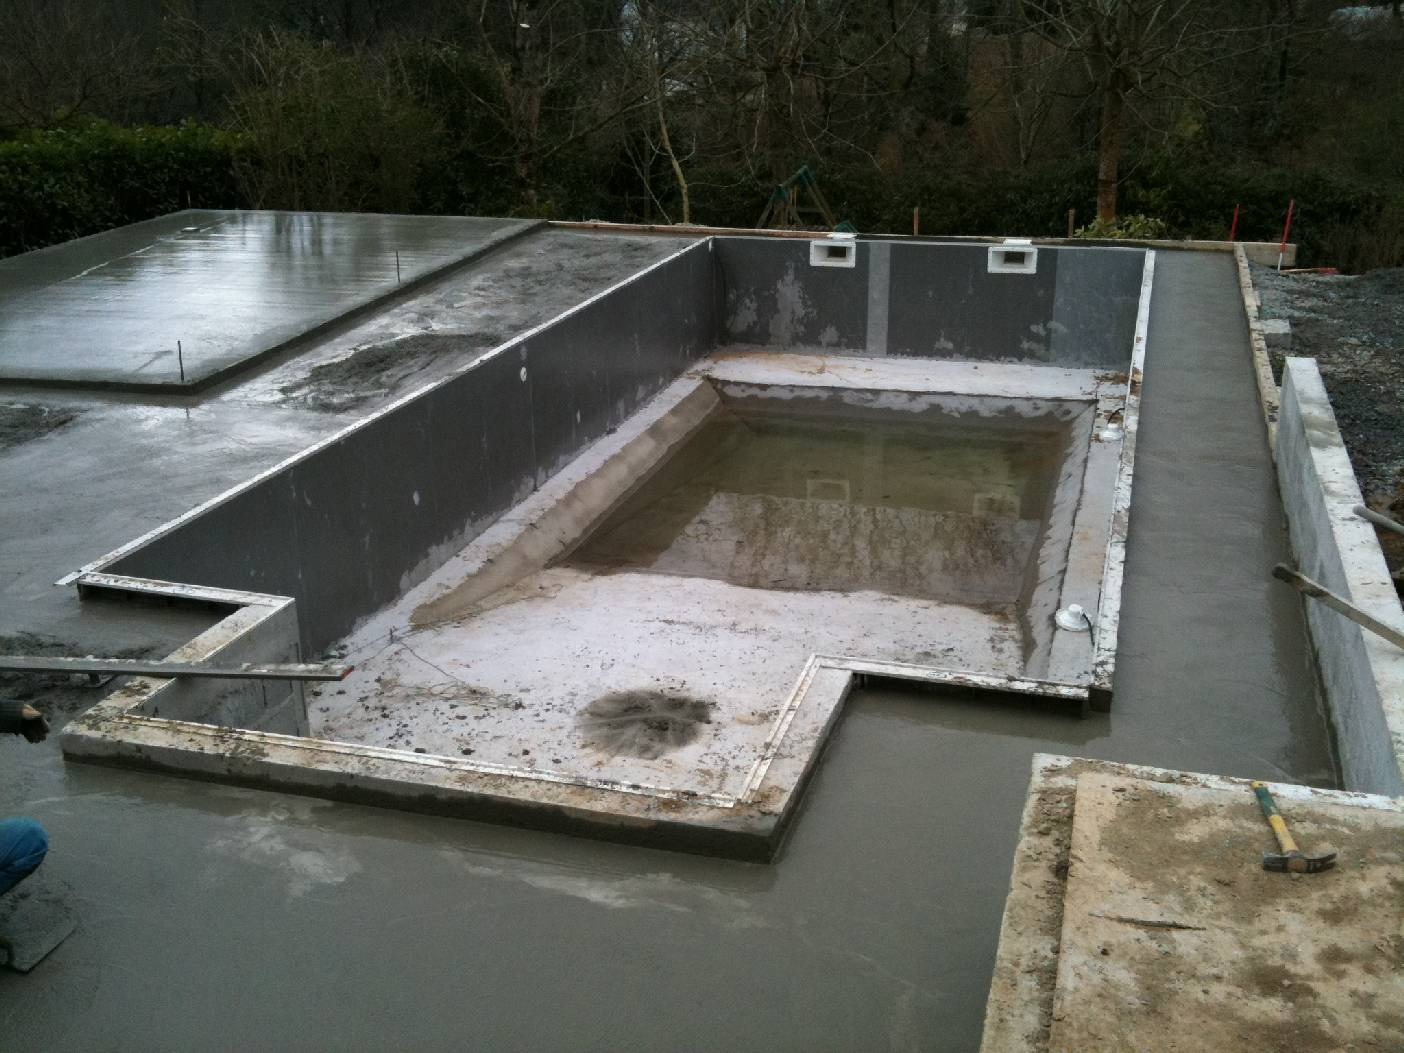 Am nagement des abords d 39 une piscine quimper goalabre - Amenagement d une piscine ...